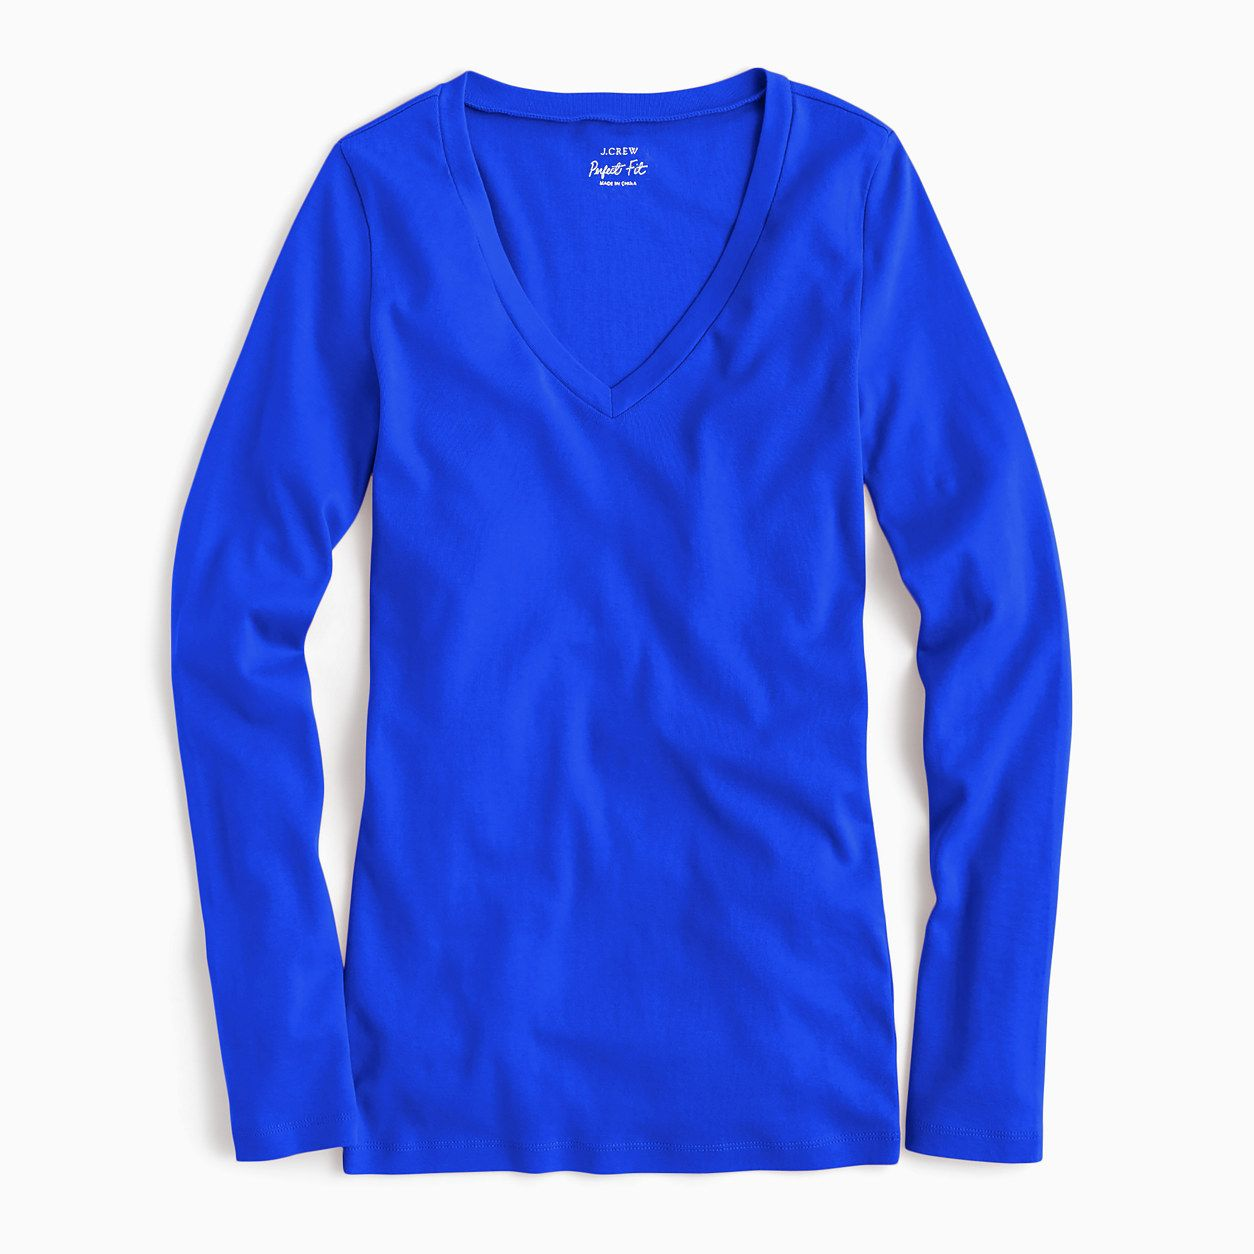 45414c0e6340 J.Crew Womens Perfect-Fit Long-Sleeve V-Neck T-Shirt (Size L) | Products